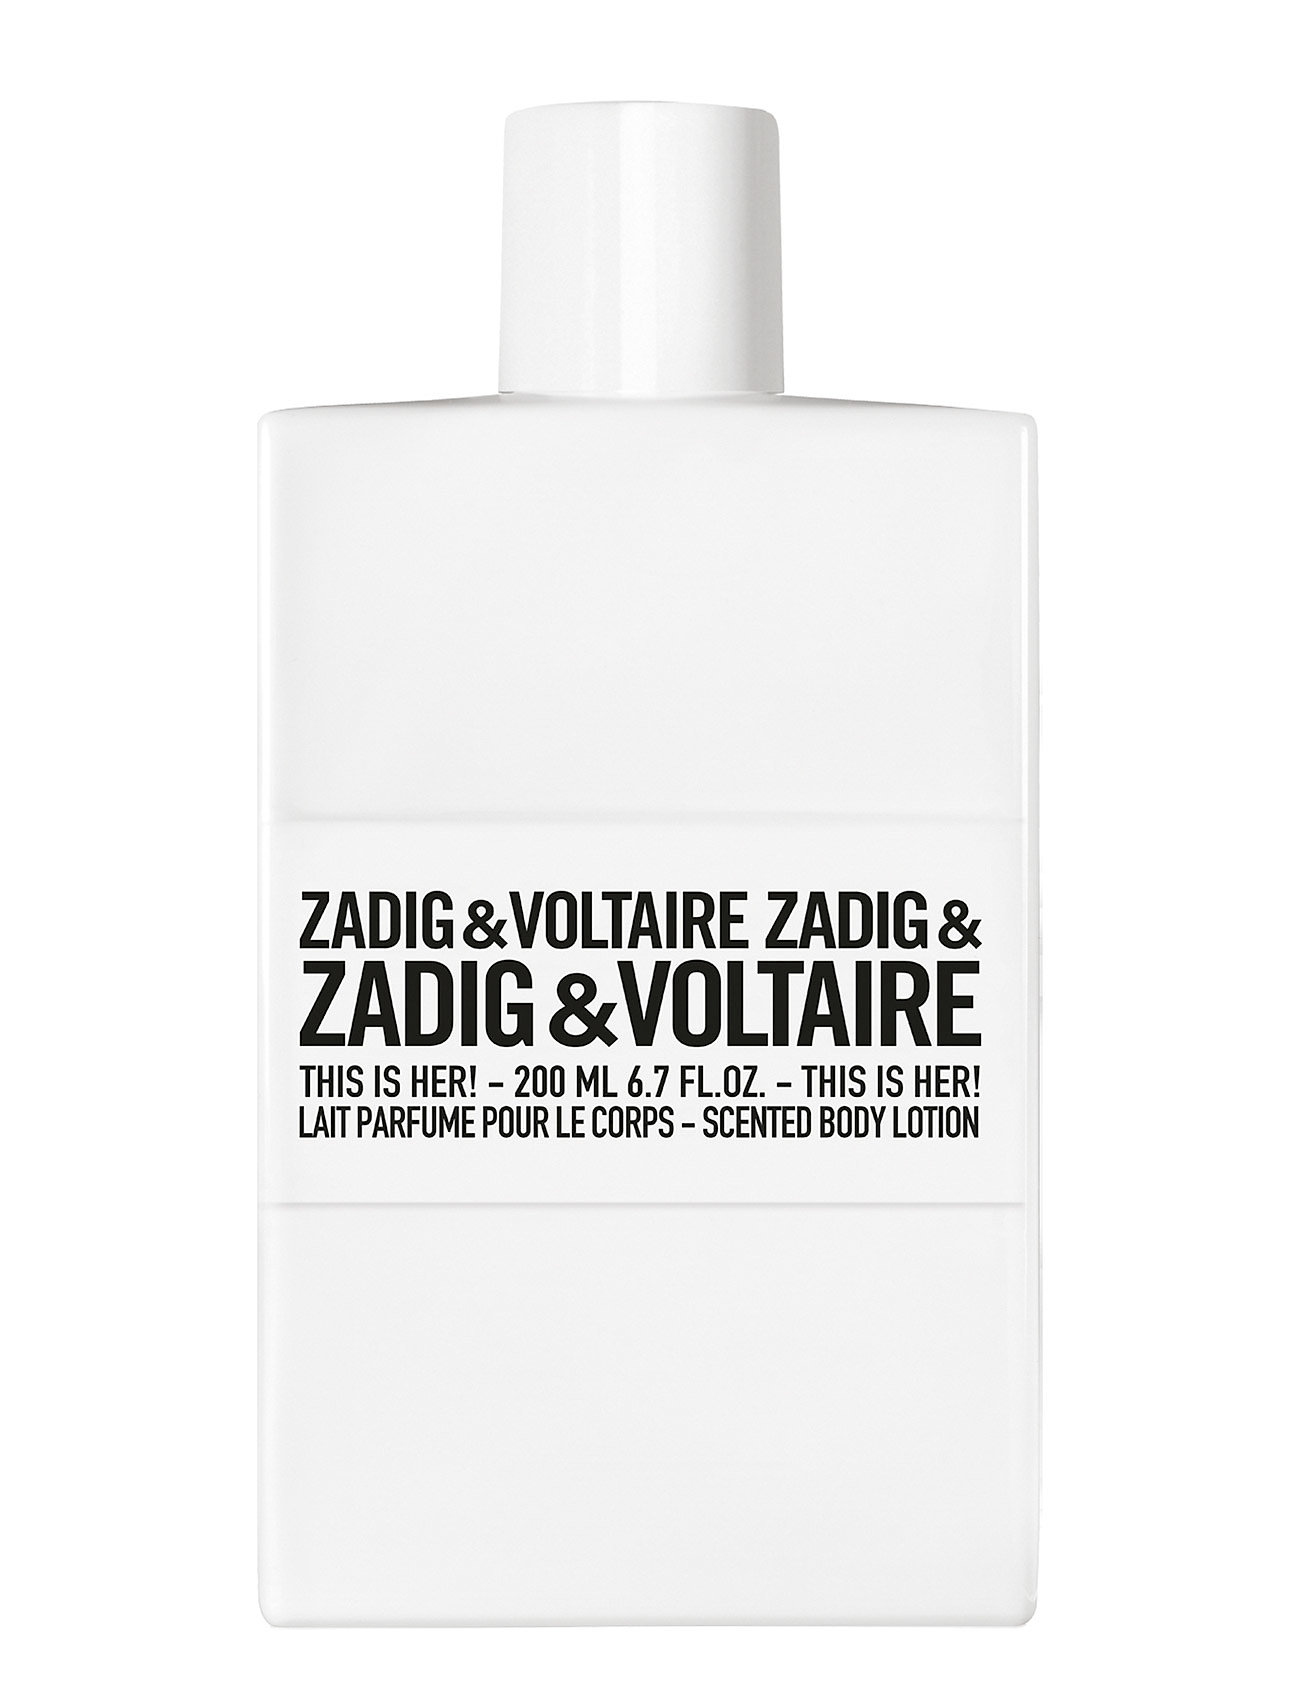 zadig & voltaire fragrance Zadig & voltaire this is her! body fra boozt.com dk